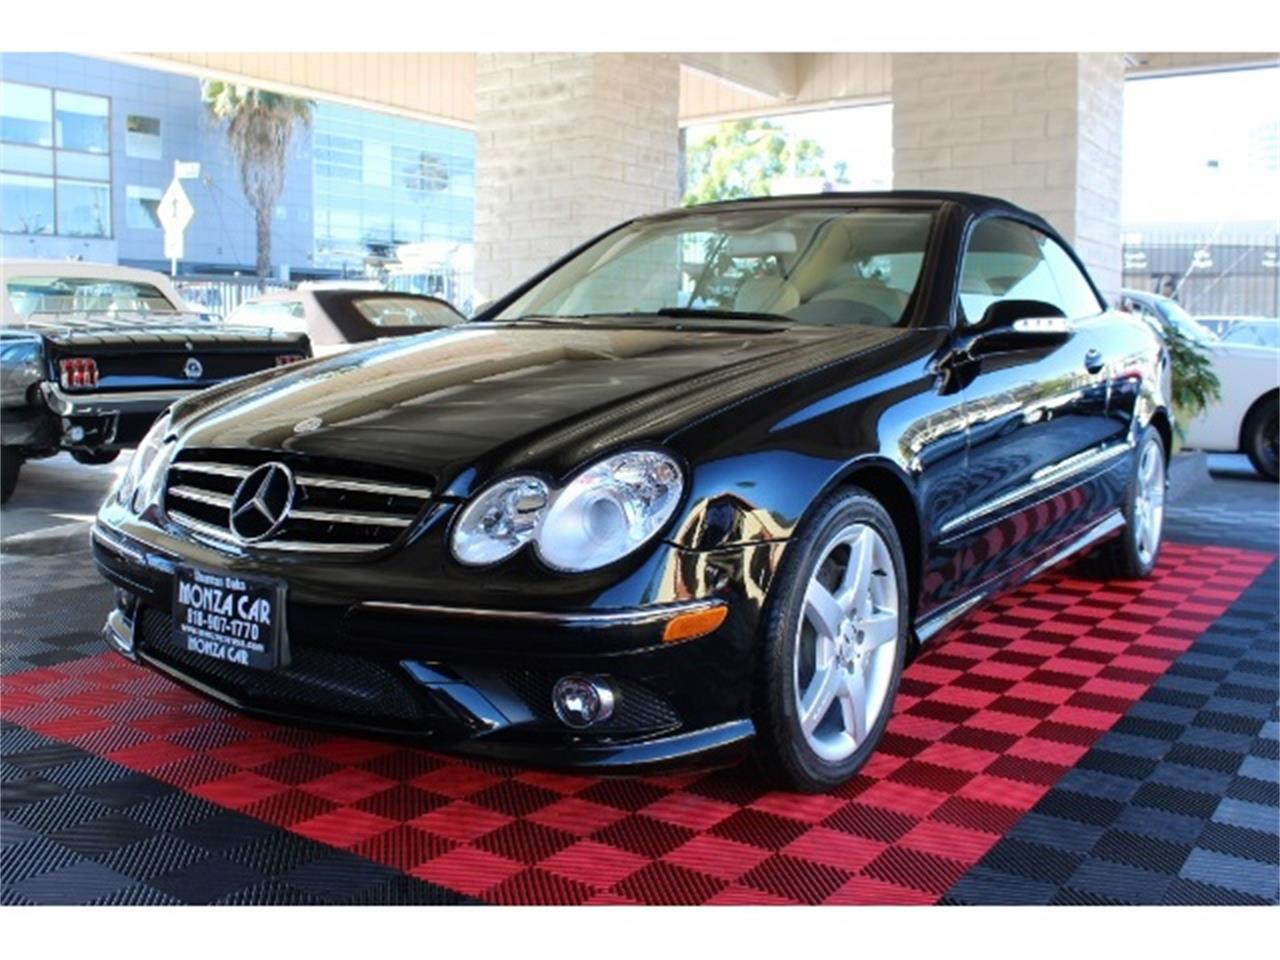 2007 Mercedes-Benz CLK-Class for sale in Sherman Oaks, CA – photo 2